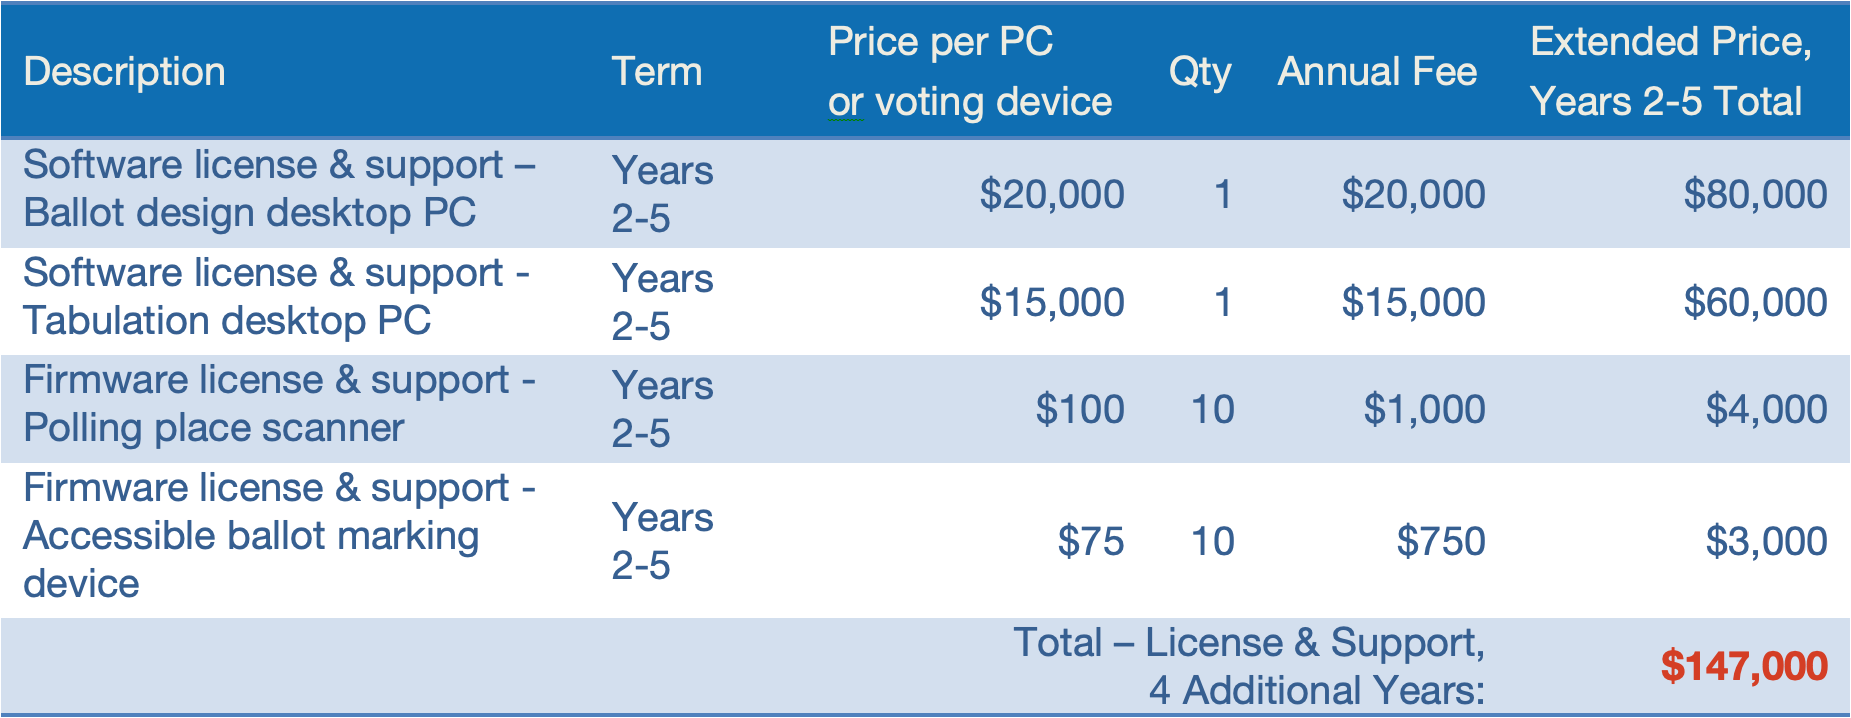 Voting System software licenses and fees for a typical jurisdiction